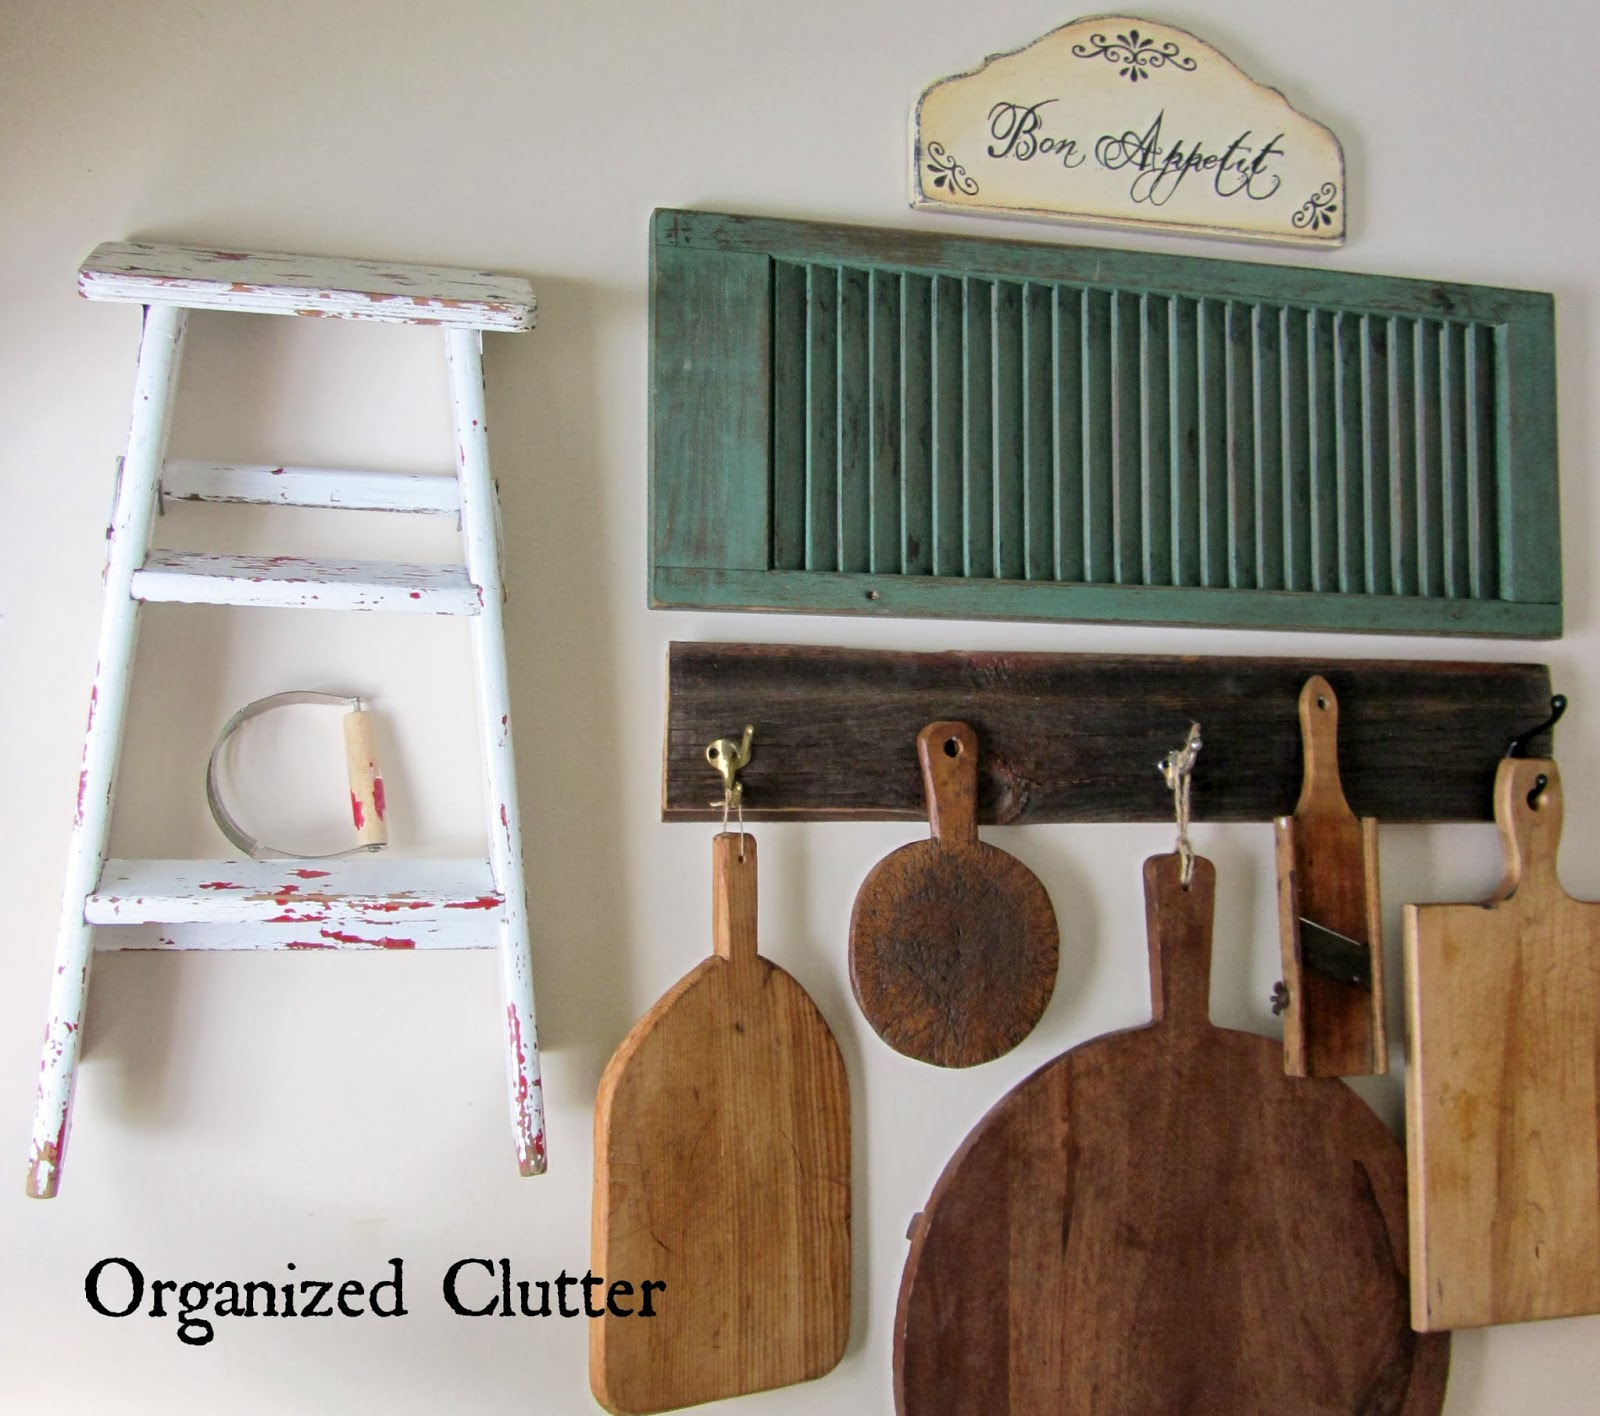 Farmhouse Kitchen Decor www.organizedclutterqueen.blogspot.com